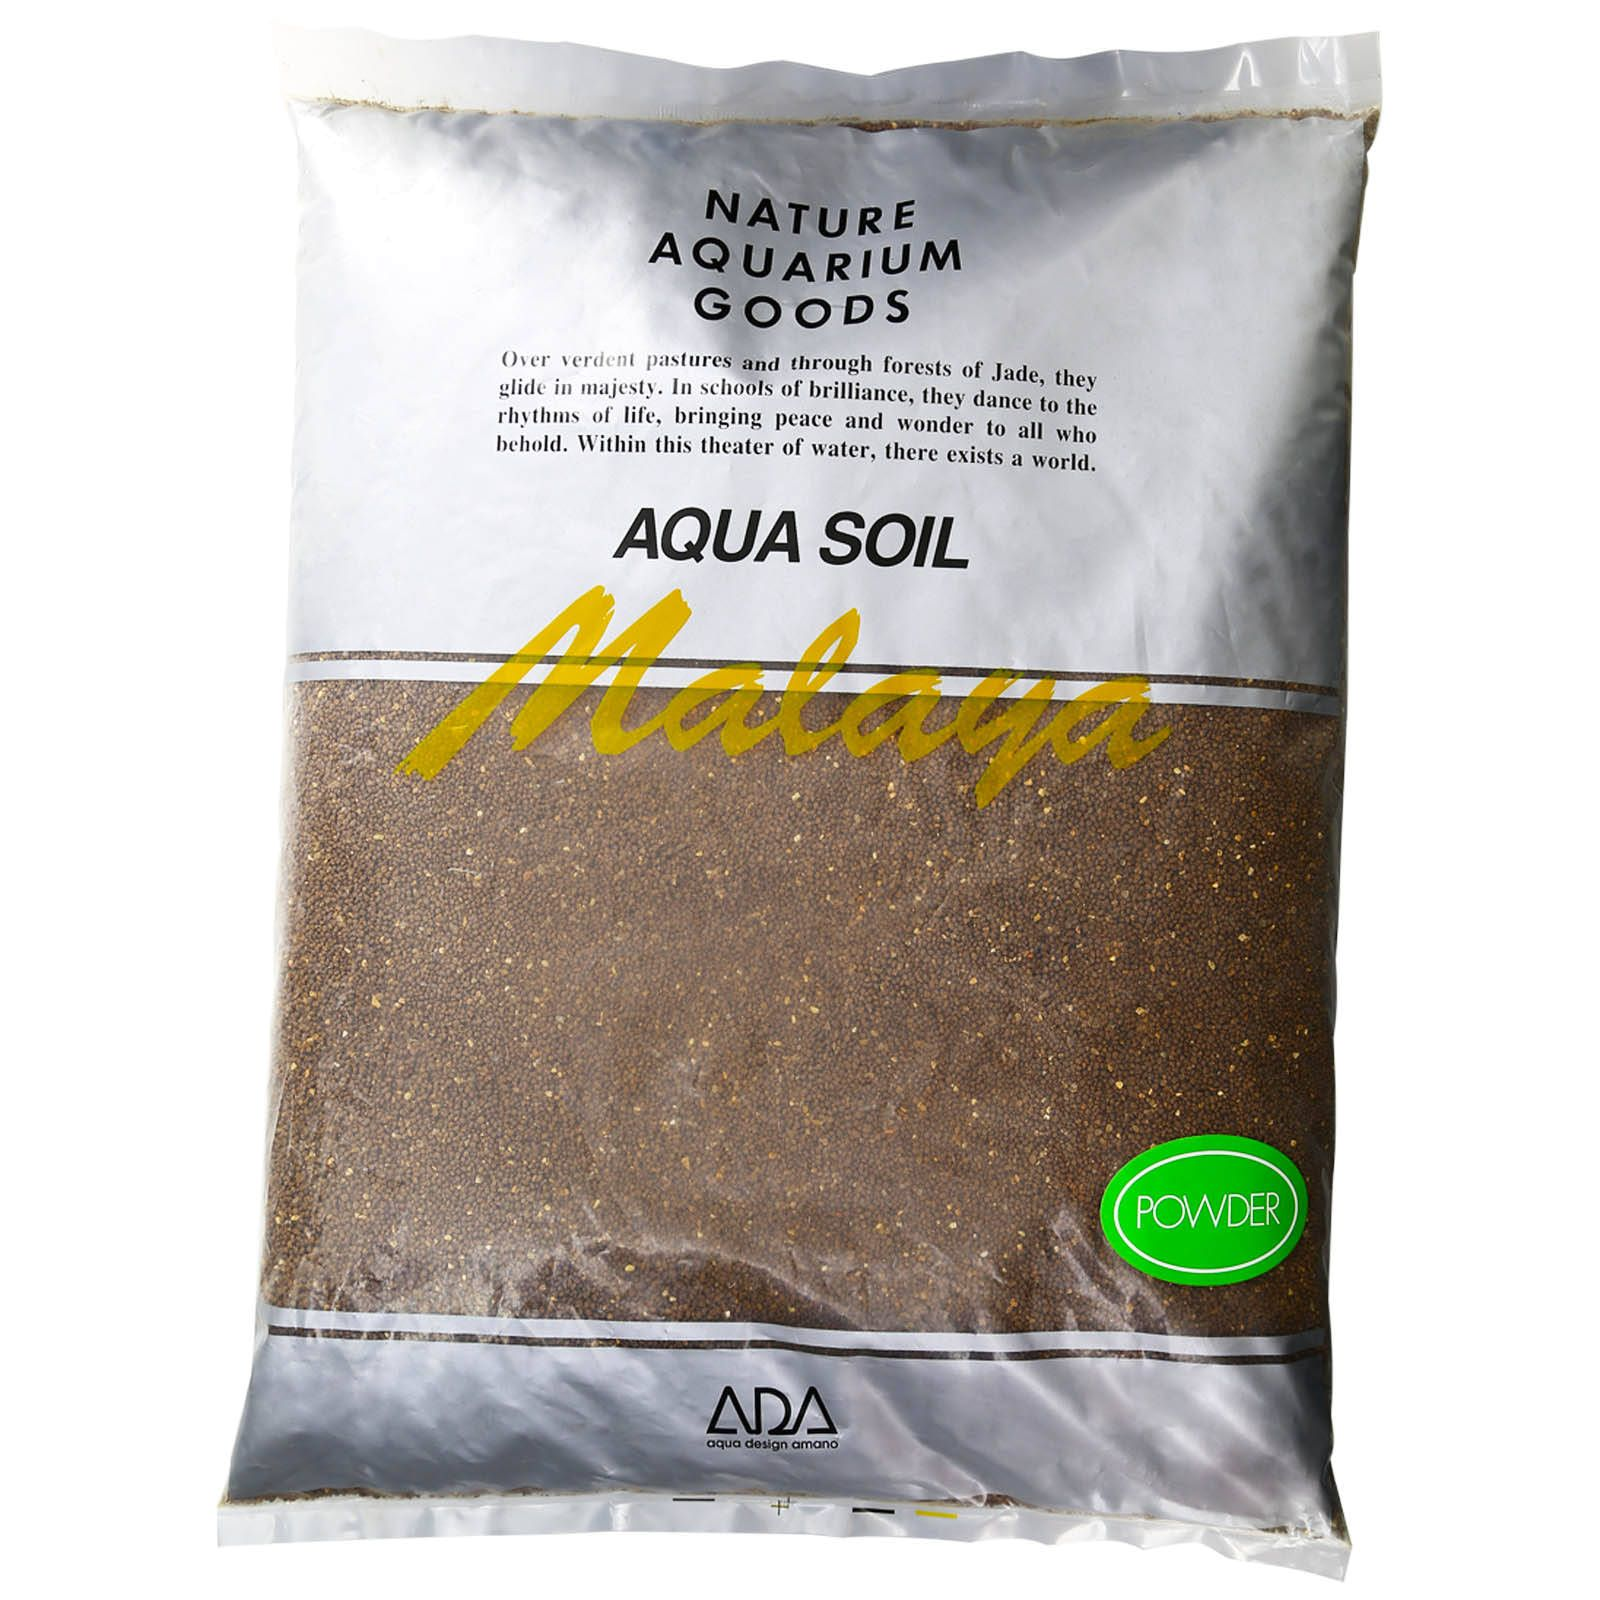 ADA - Aqua Soil - Malaya Powder - 9 l